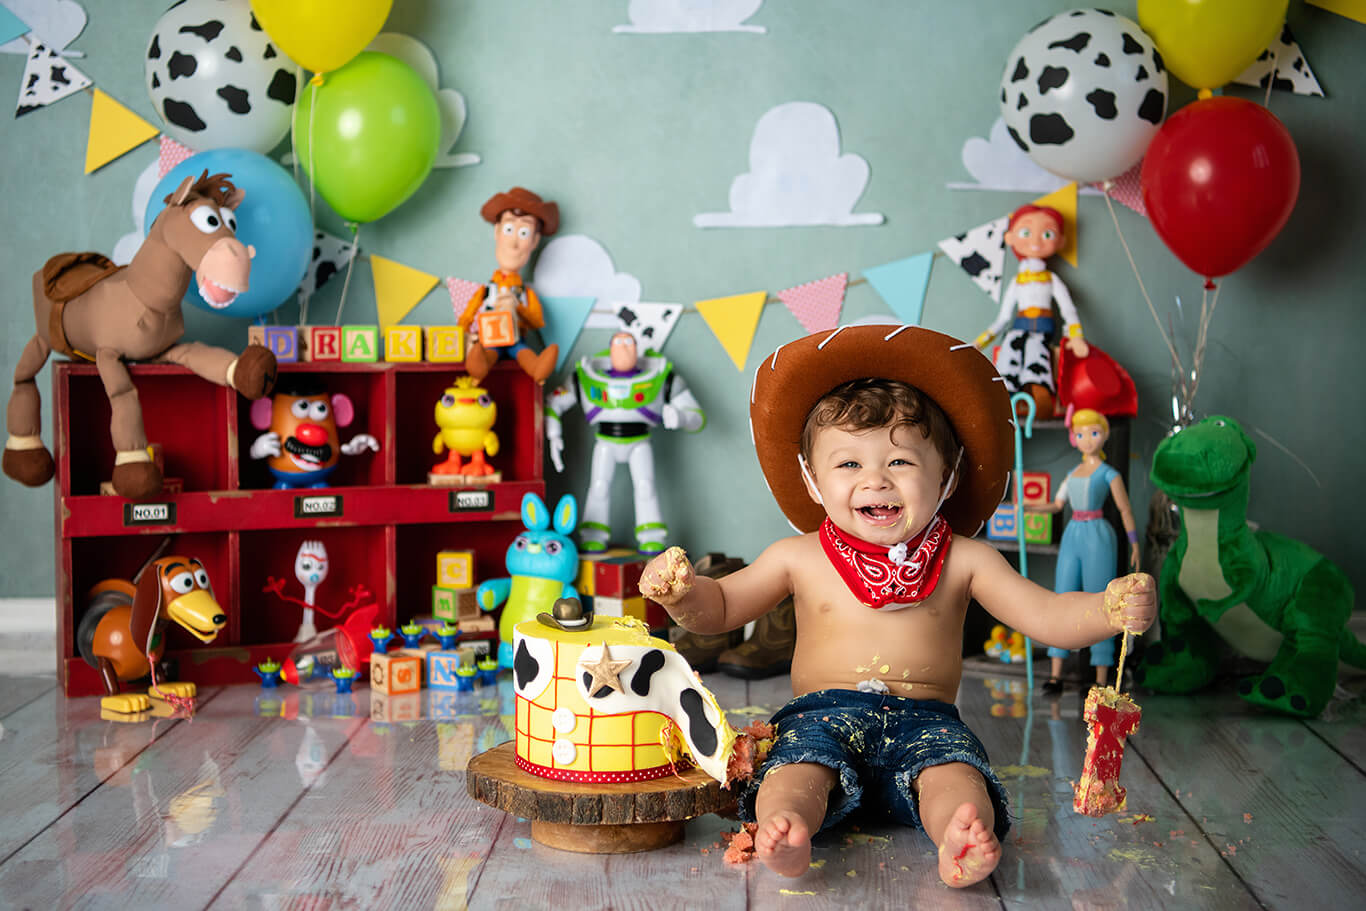 Toy story first birthday cake smash photography